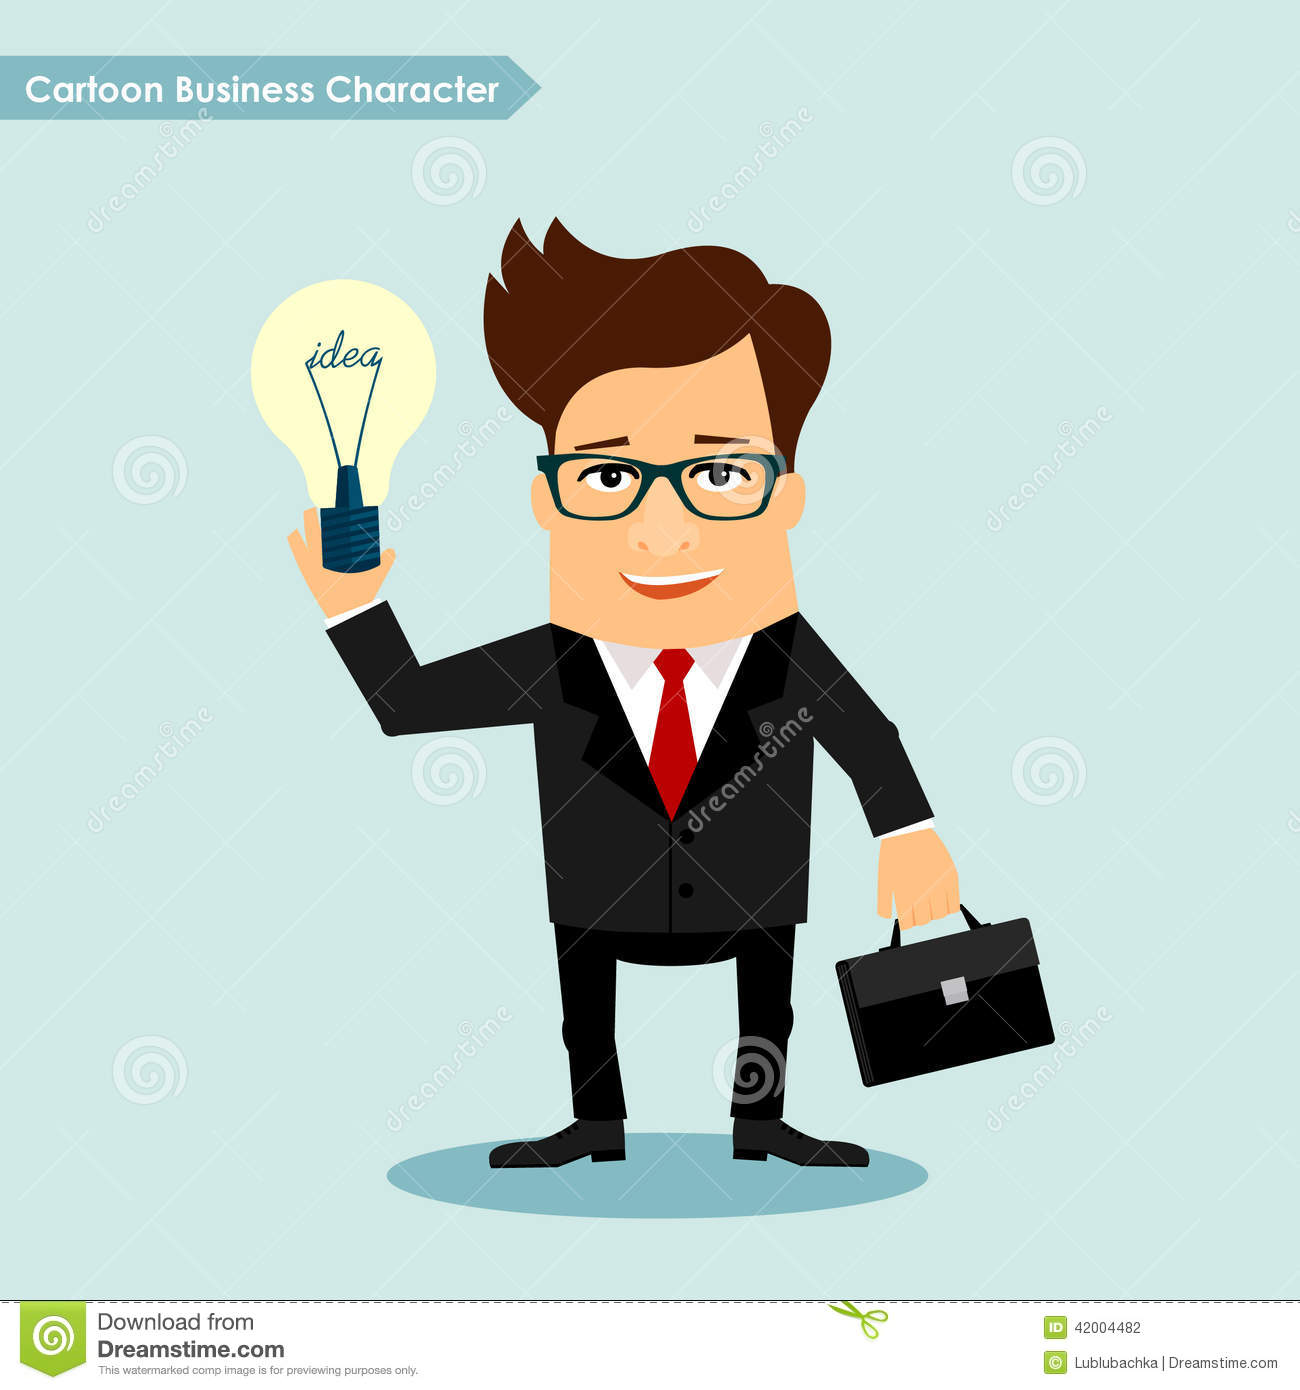 business-man-cartoon-character-holding-idea-lamp-symbol-vector-illustration-42004482.jpg